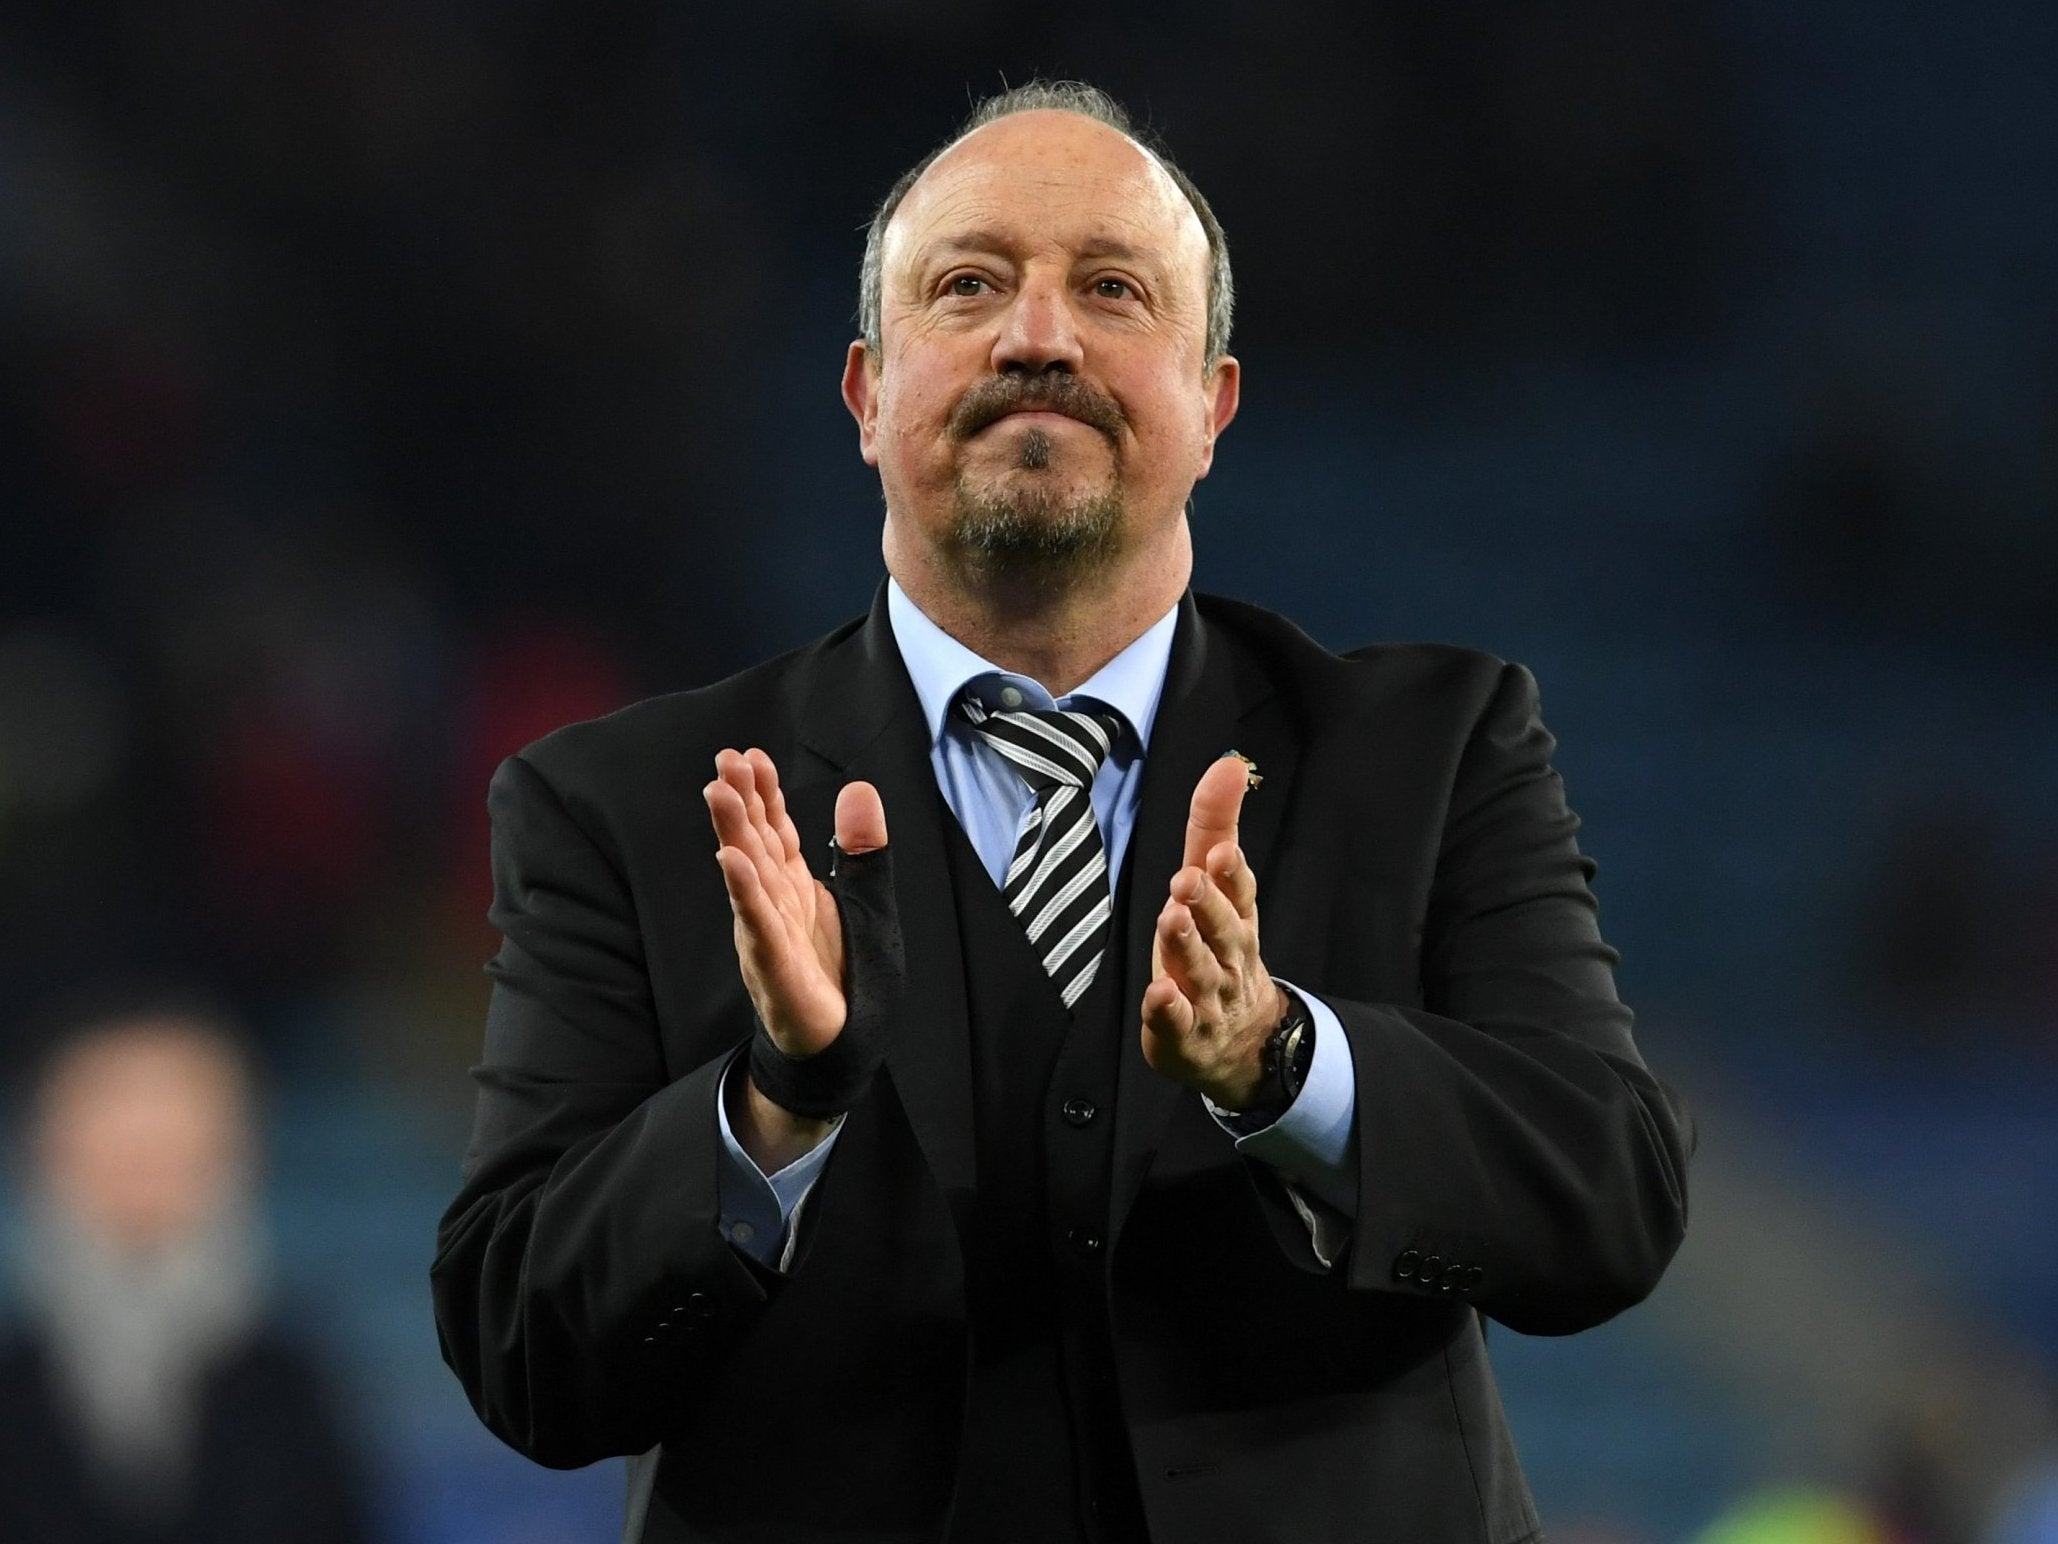 Rafael Benitez appointed manager of Chinese Super League club Dalian Yifang on £12m-a-year contract